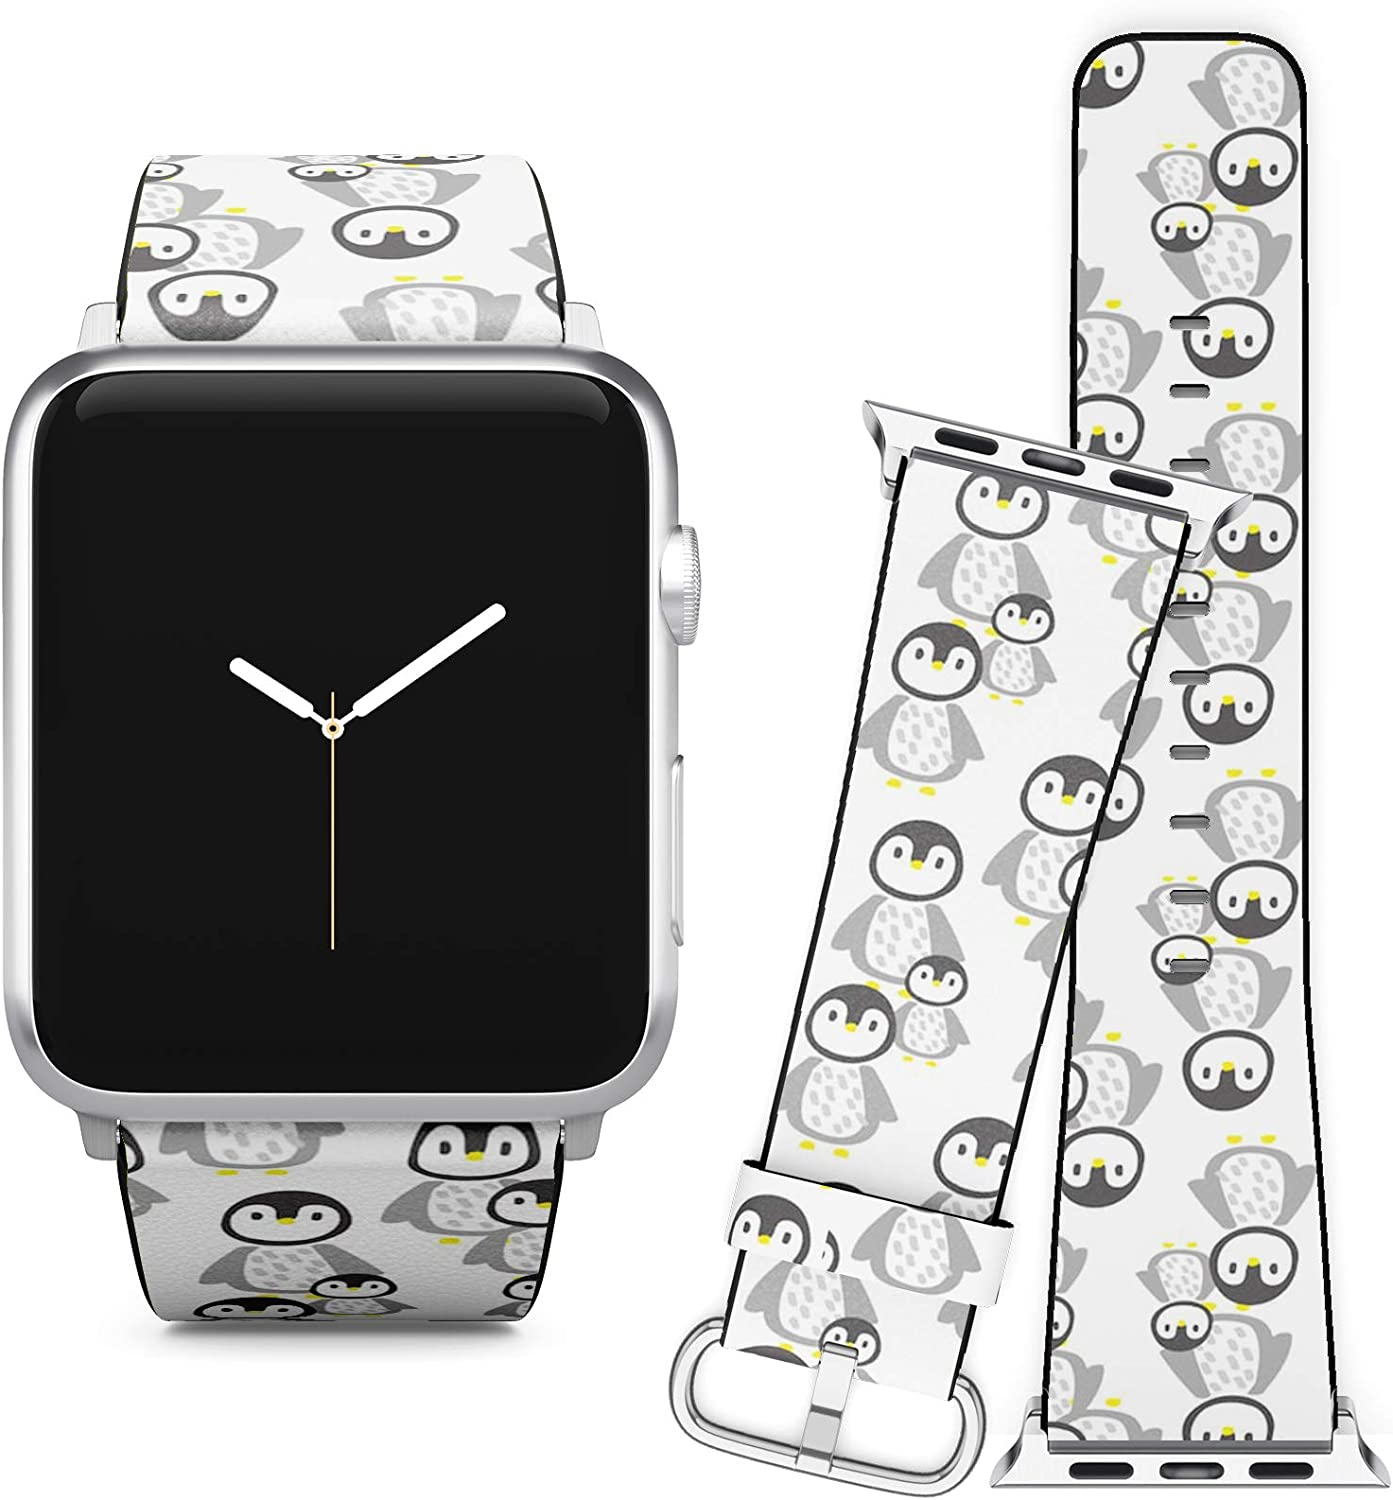 Compatible with Apple Watch iWatch (42/44 mm) Series 5, 4, 3, 2, 1 // Soft Leather Replacement Bracelet Strap Wristband + Adapters // Penguins